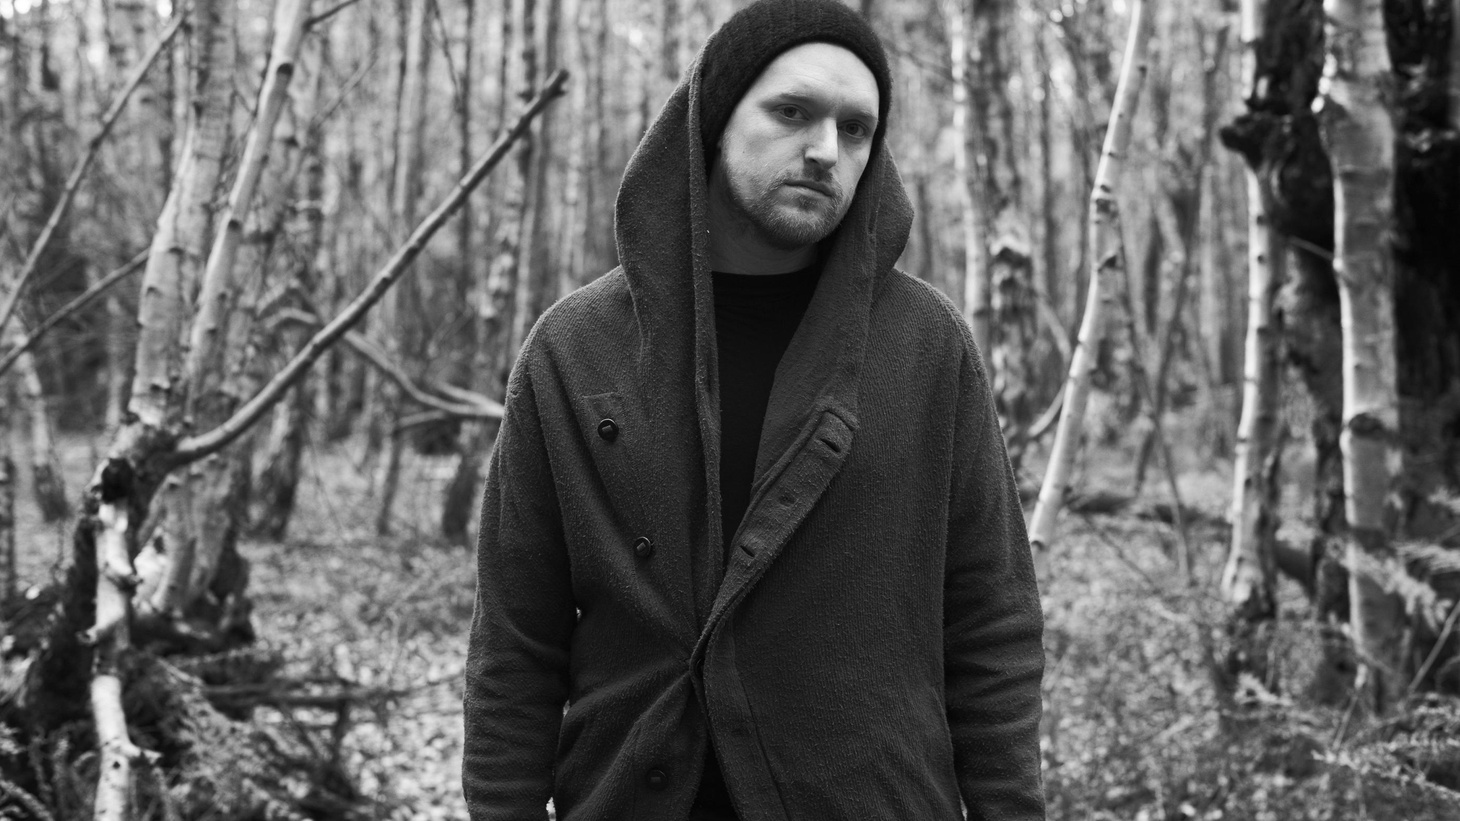 London-born, Vienna-based producer Sohn has worked with artists like Lana Del Rey, BANKS, and Rhye. For his solo debut, he puts the focus on strong beats with subtle electronic elements.